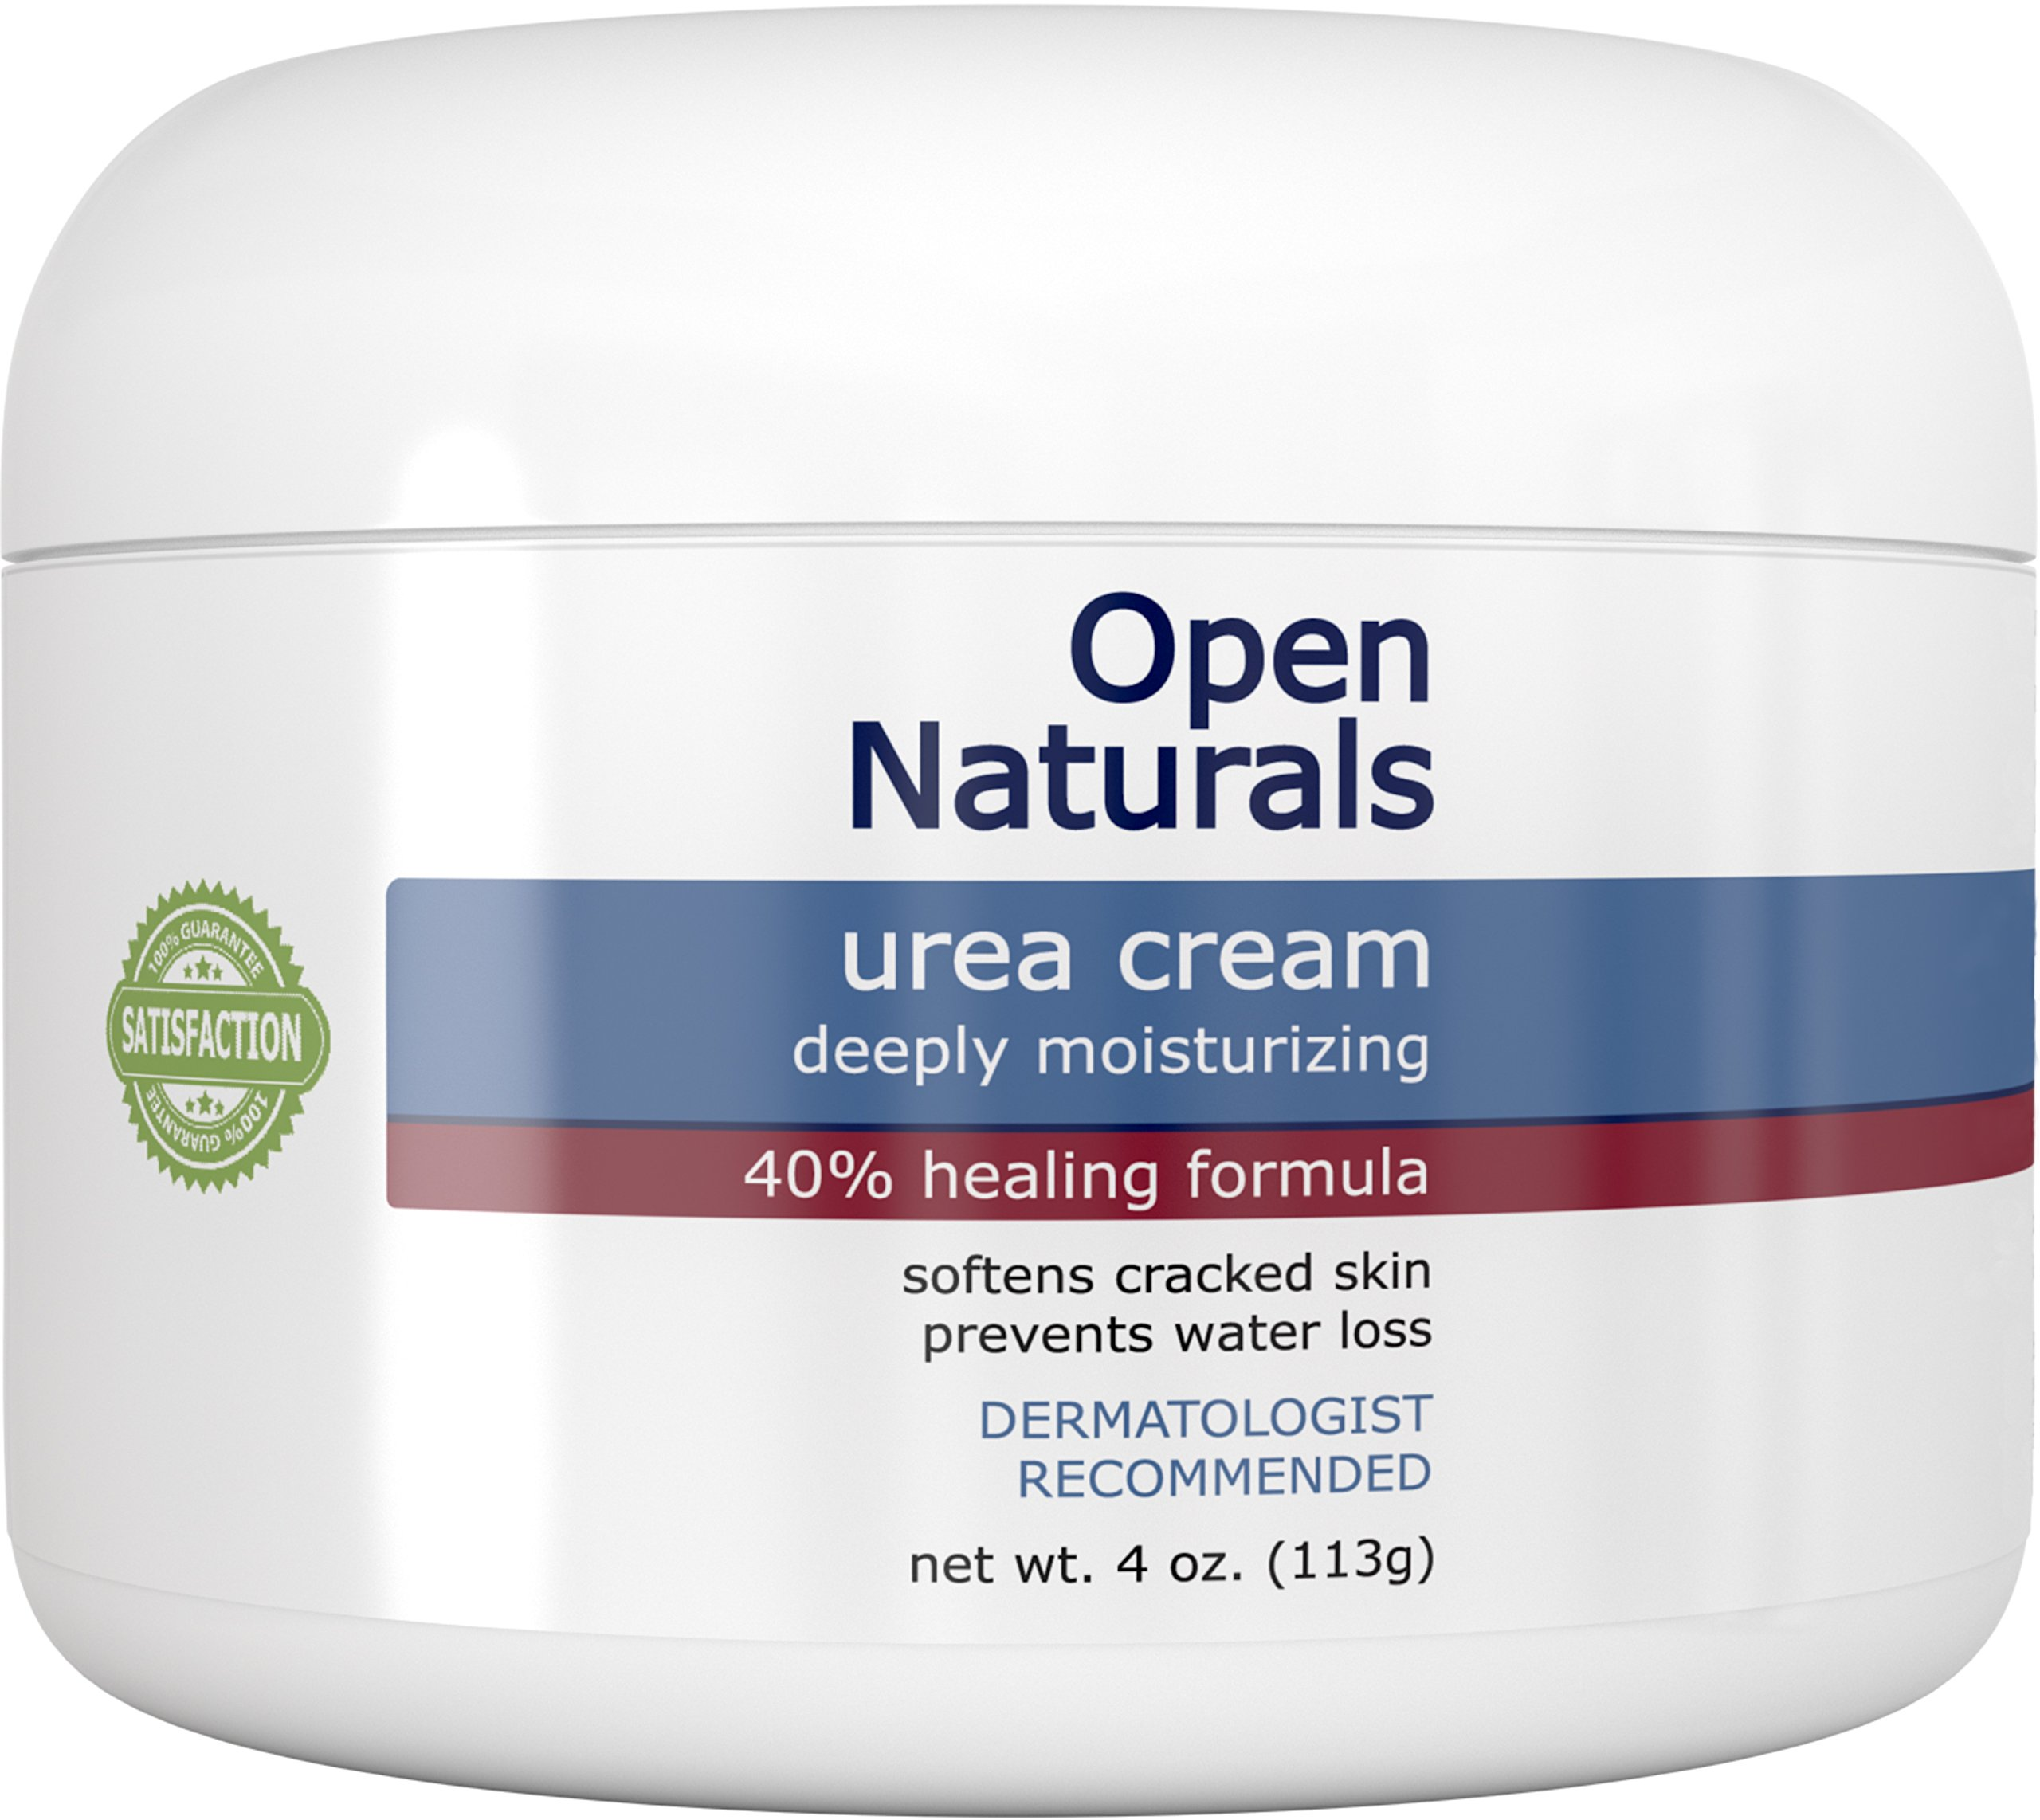 Open Naturals Urea 40% Foot Cream - 4 oz - Premium Callus Remover - Moisturizes and Rehydrates Thick, Cracked, Rough, Dead and Dry Skin - Elbow, Feet - Your Satisfaction or 100% Money Back Guarantee by Open Naturals (Image #6)